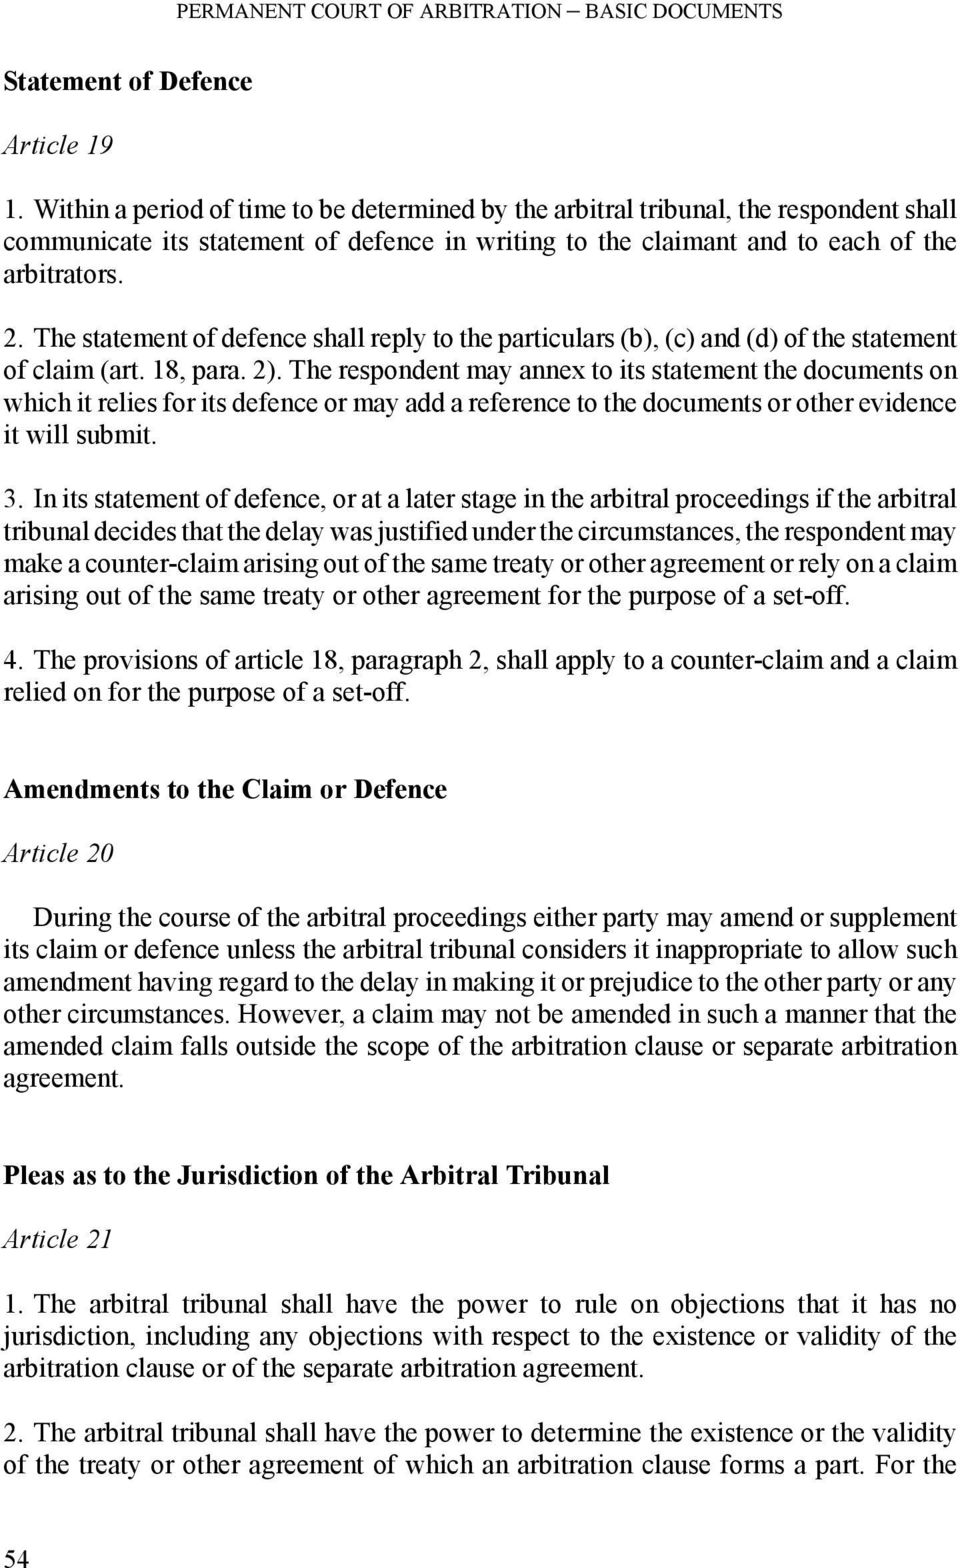 Permanent Court Of Arbitration Optional Rules For Arbitrating